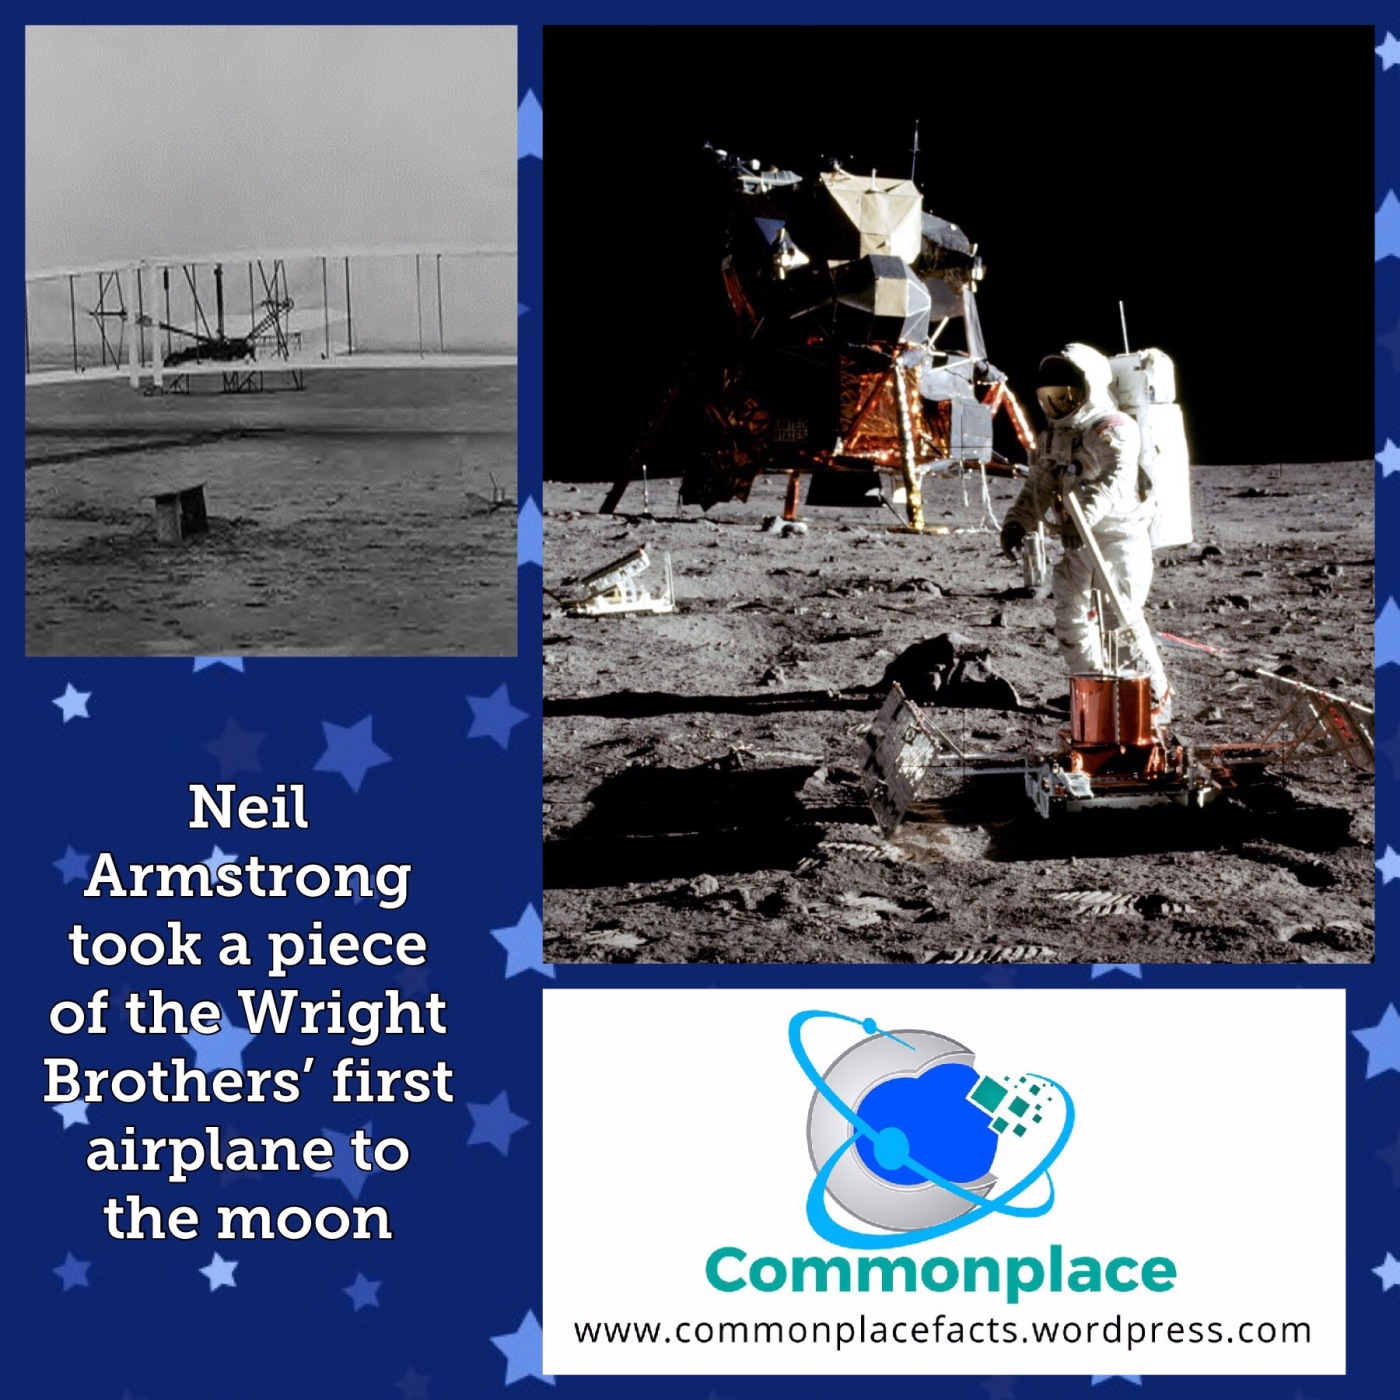 #aviation #space #neilarmstrong #apollo11 #wrightbrothers #funfacts